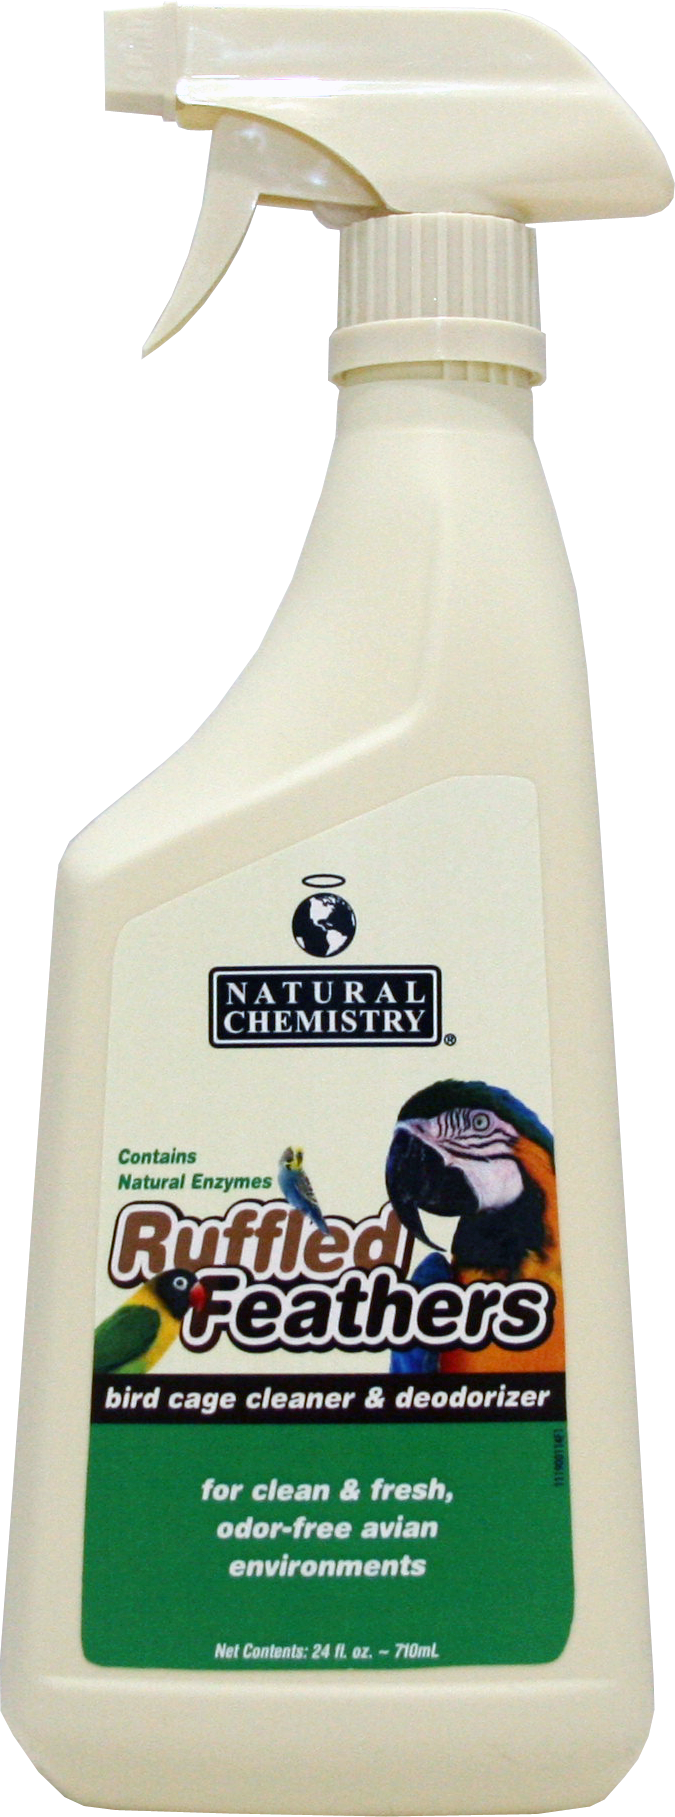 11190 Ruffled Feathers Bird Cage Cleaner & Deodorizer.png